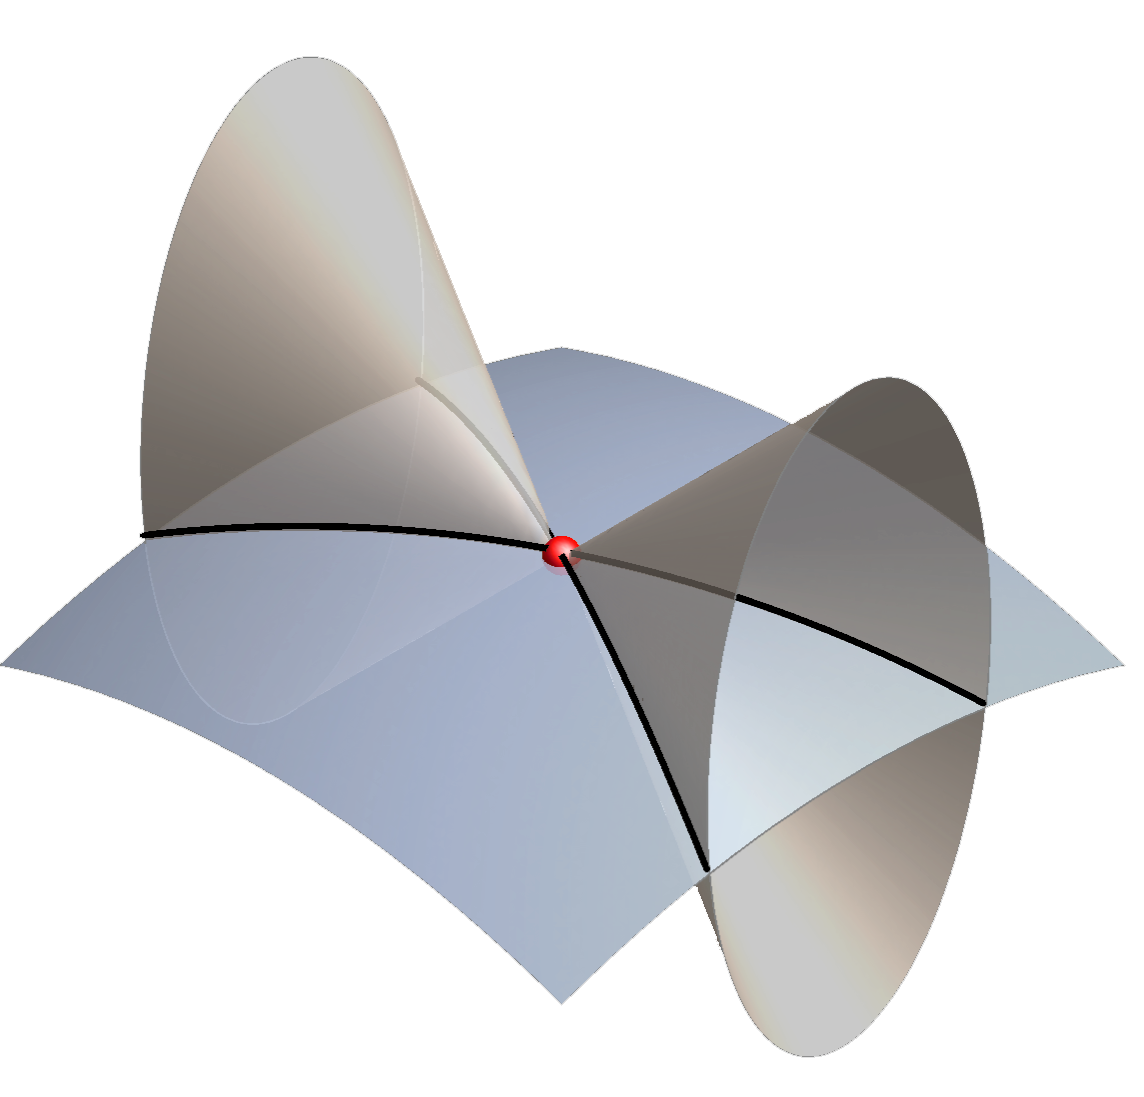 Clipart umbrella triangular. Space curves beside that